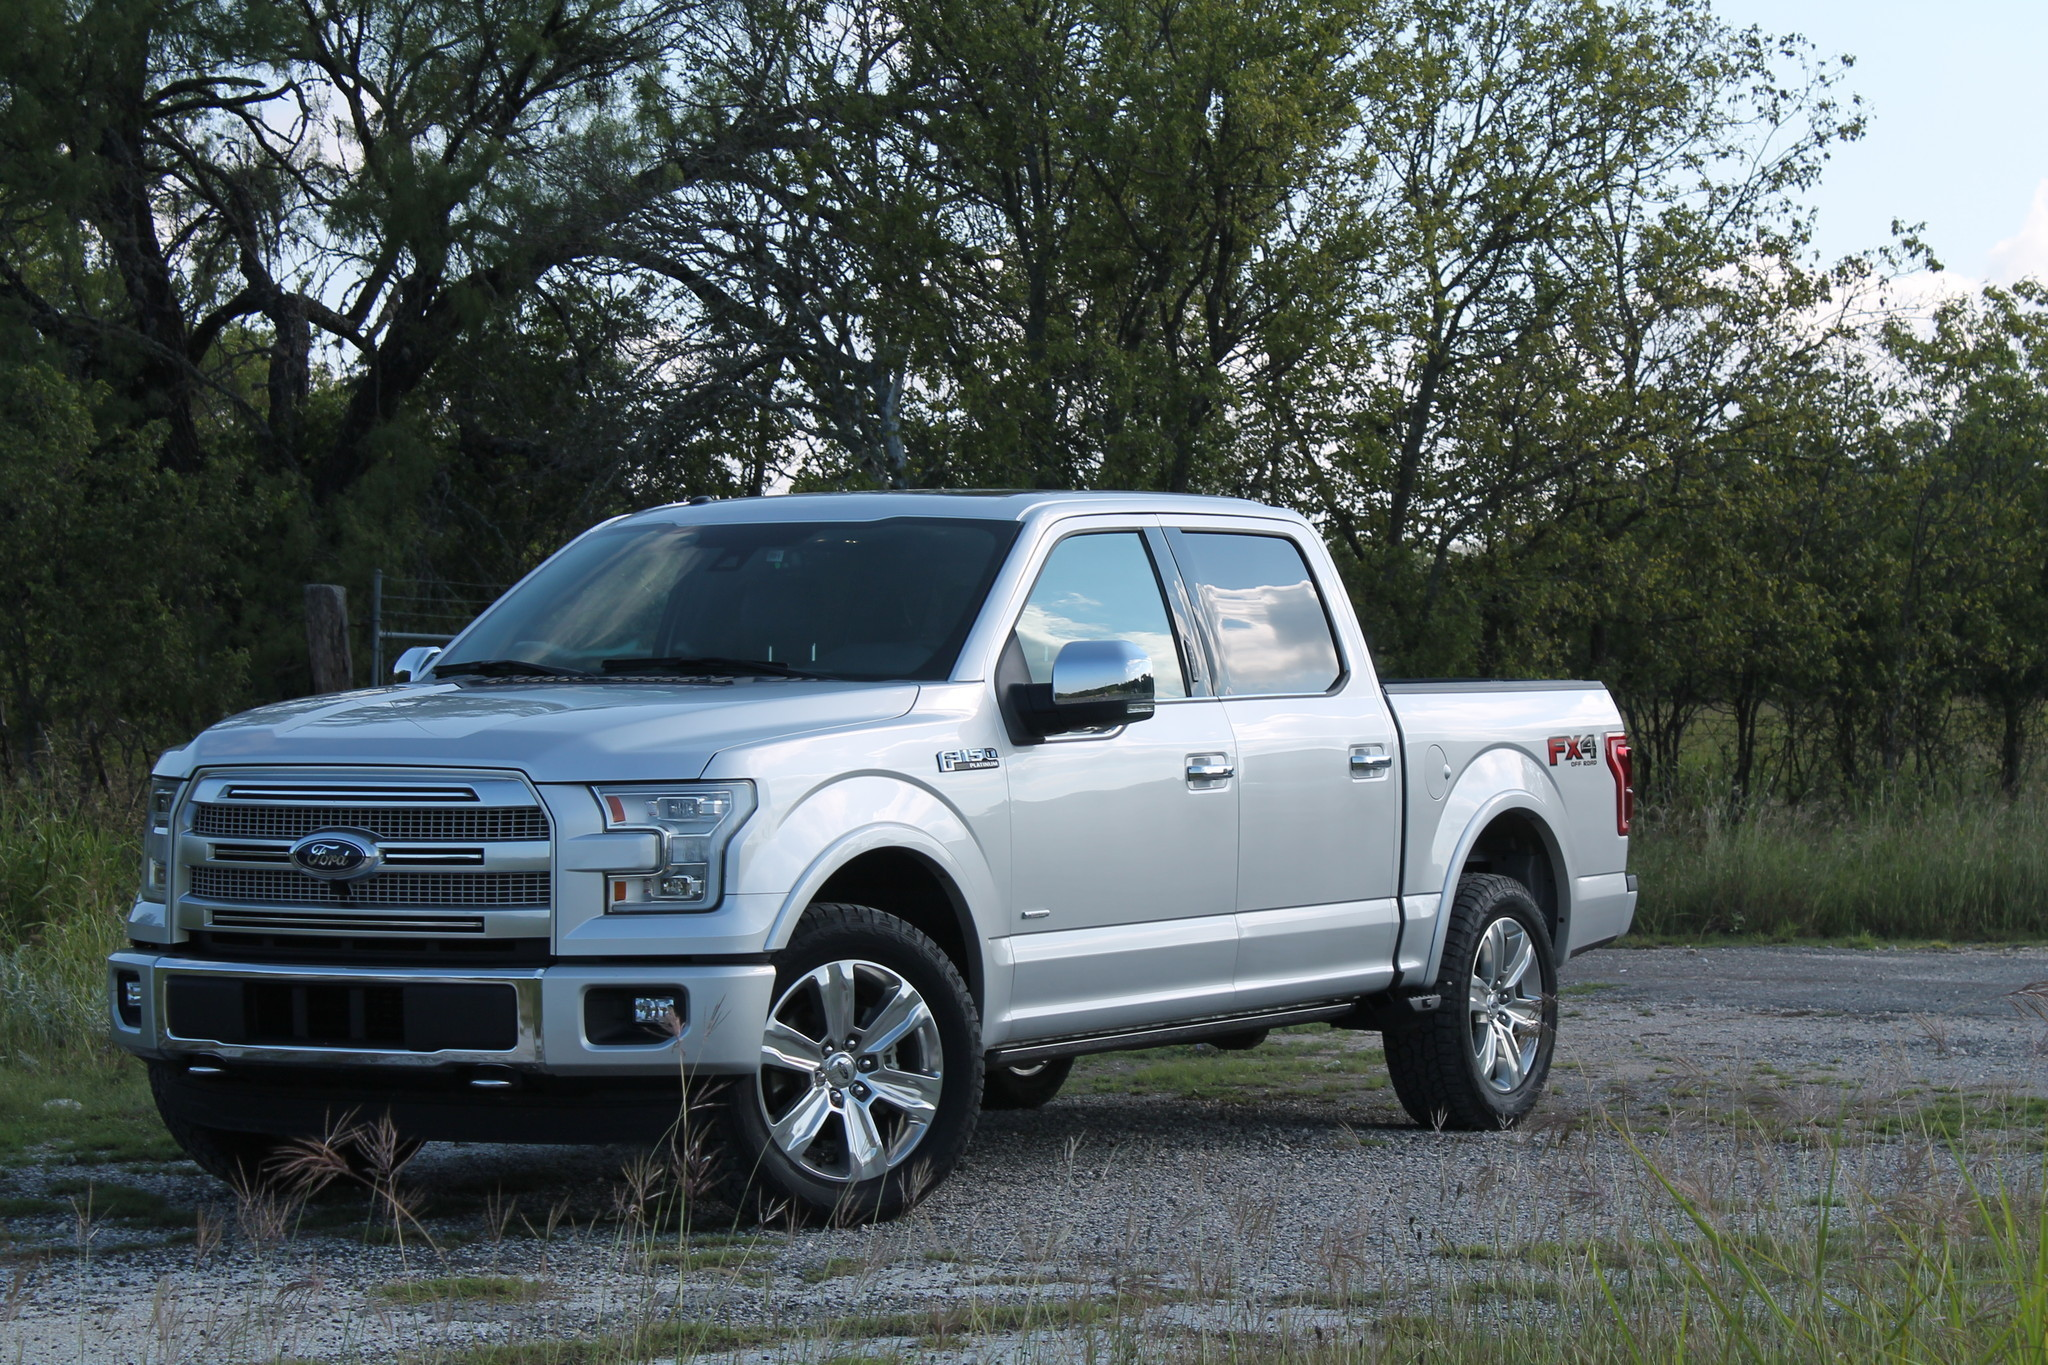 Ford Dealerships In San Antonio >> The $61,000 question: First look at Ford's most expensive F-150 pickup - LA Times